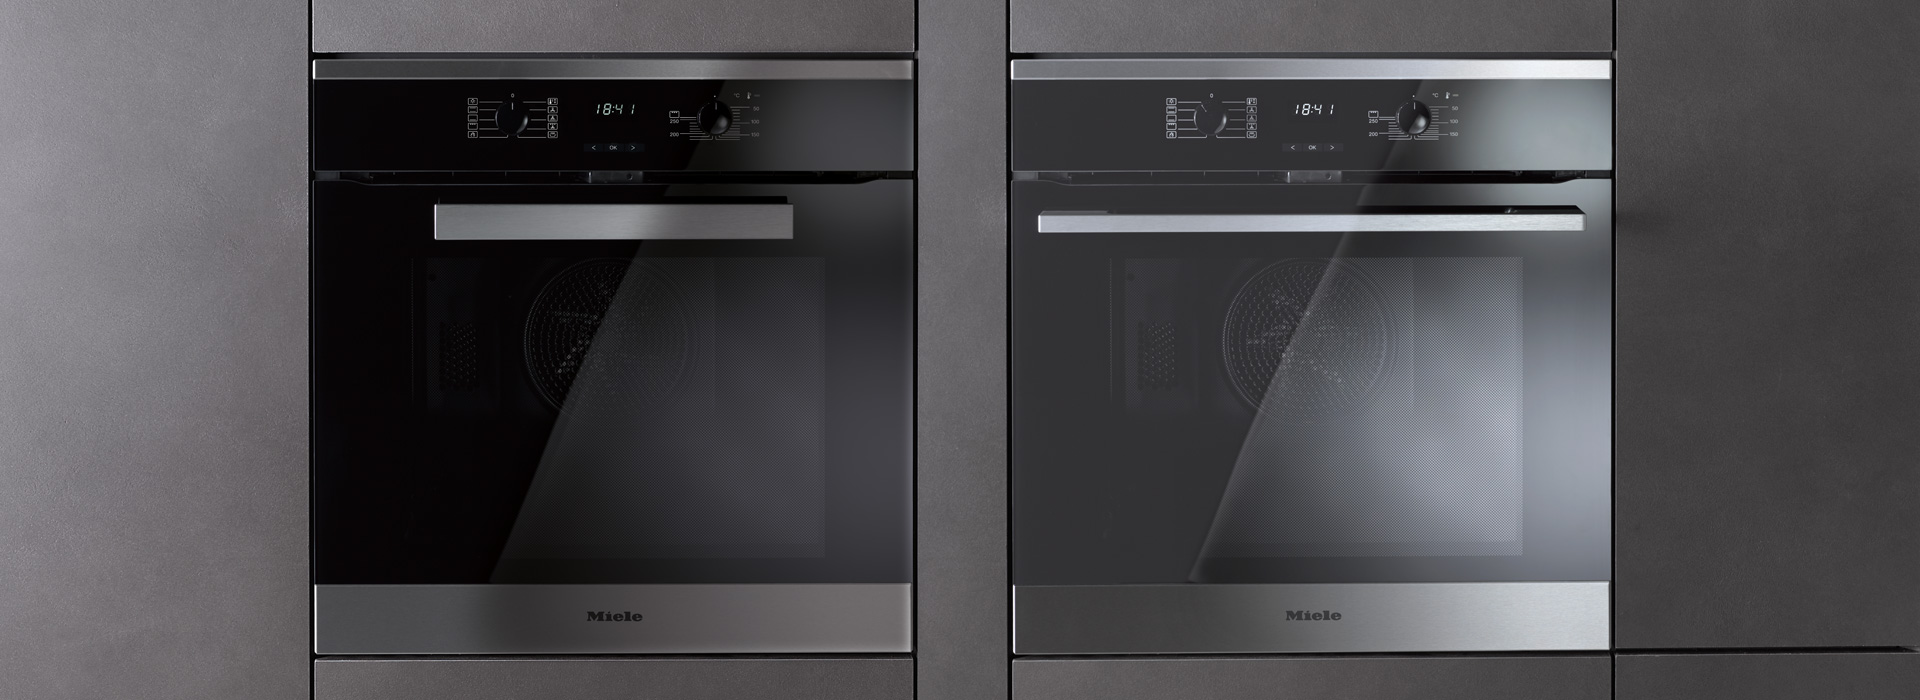 Miele Pyrolytic Ovens Self Cleaning Oven 187 Miele